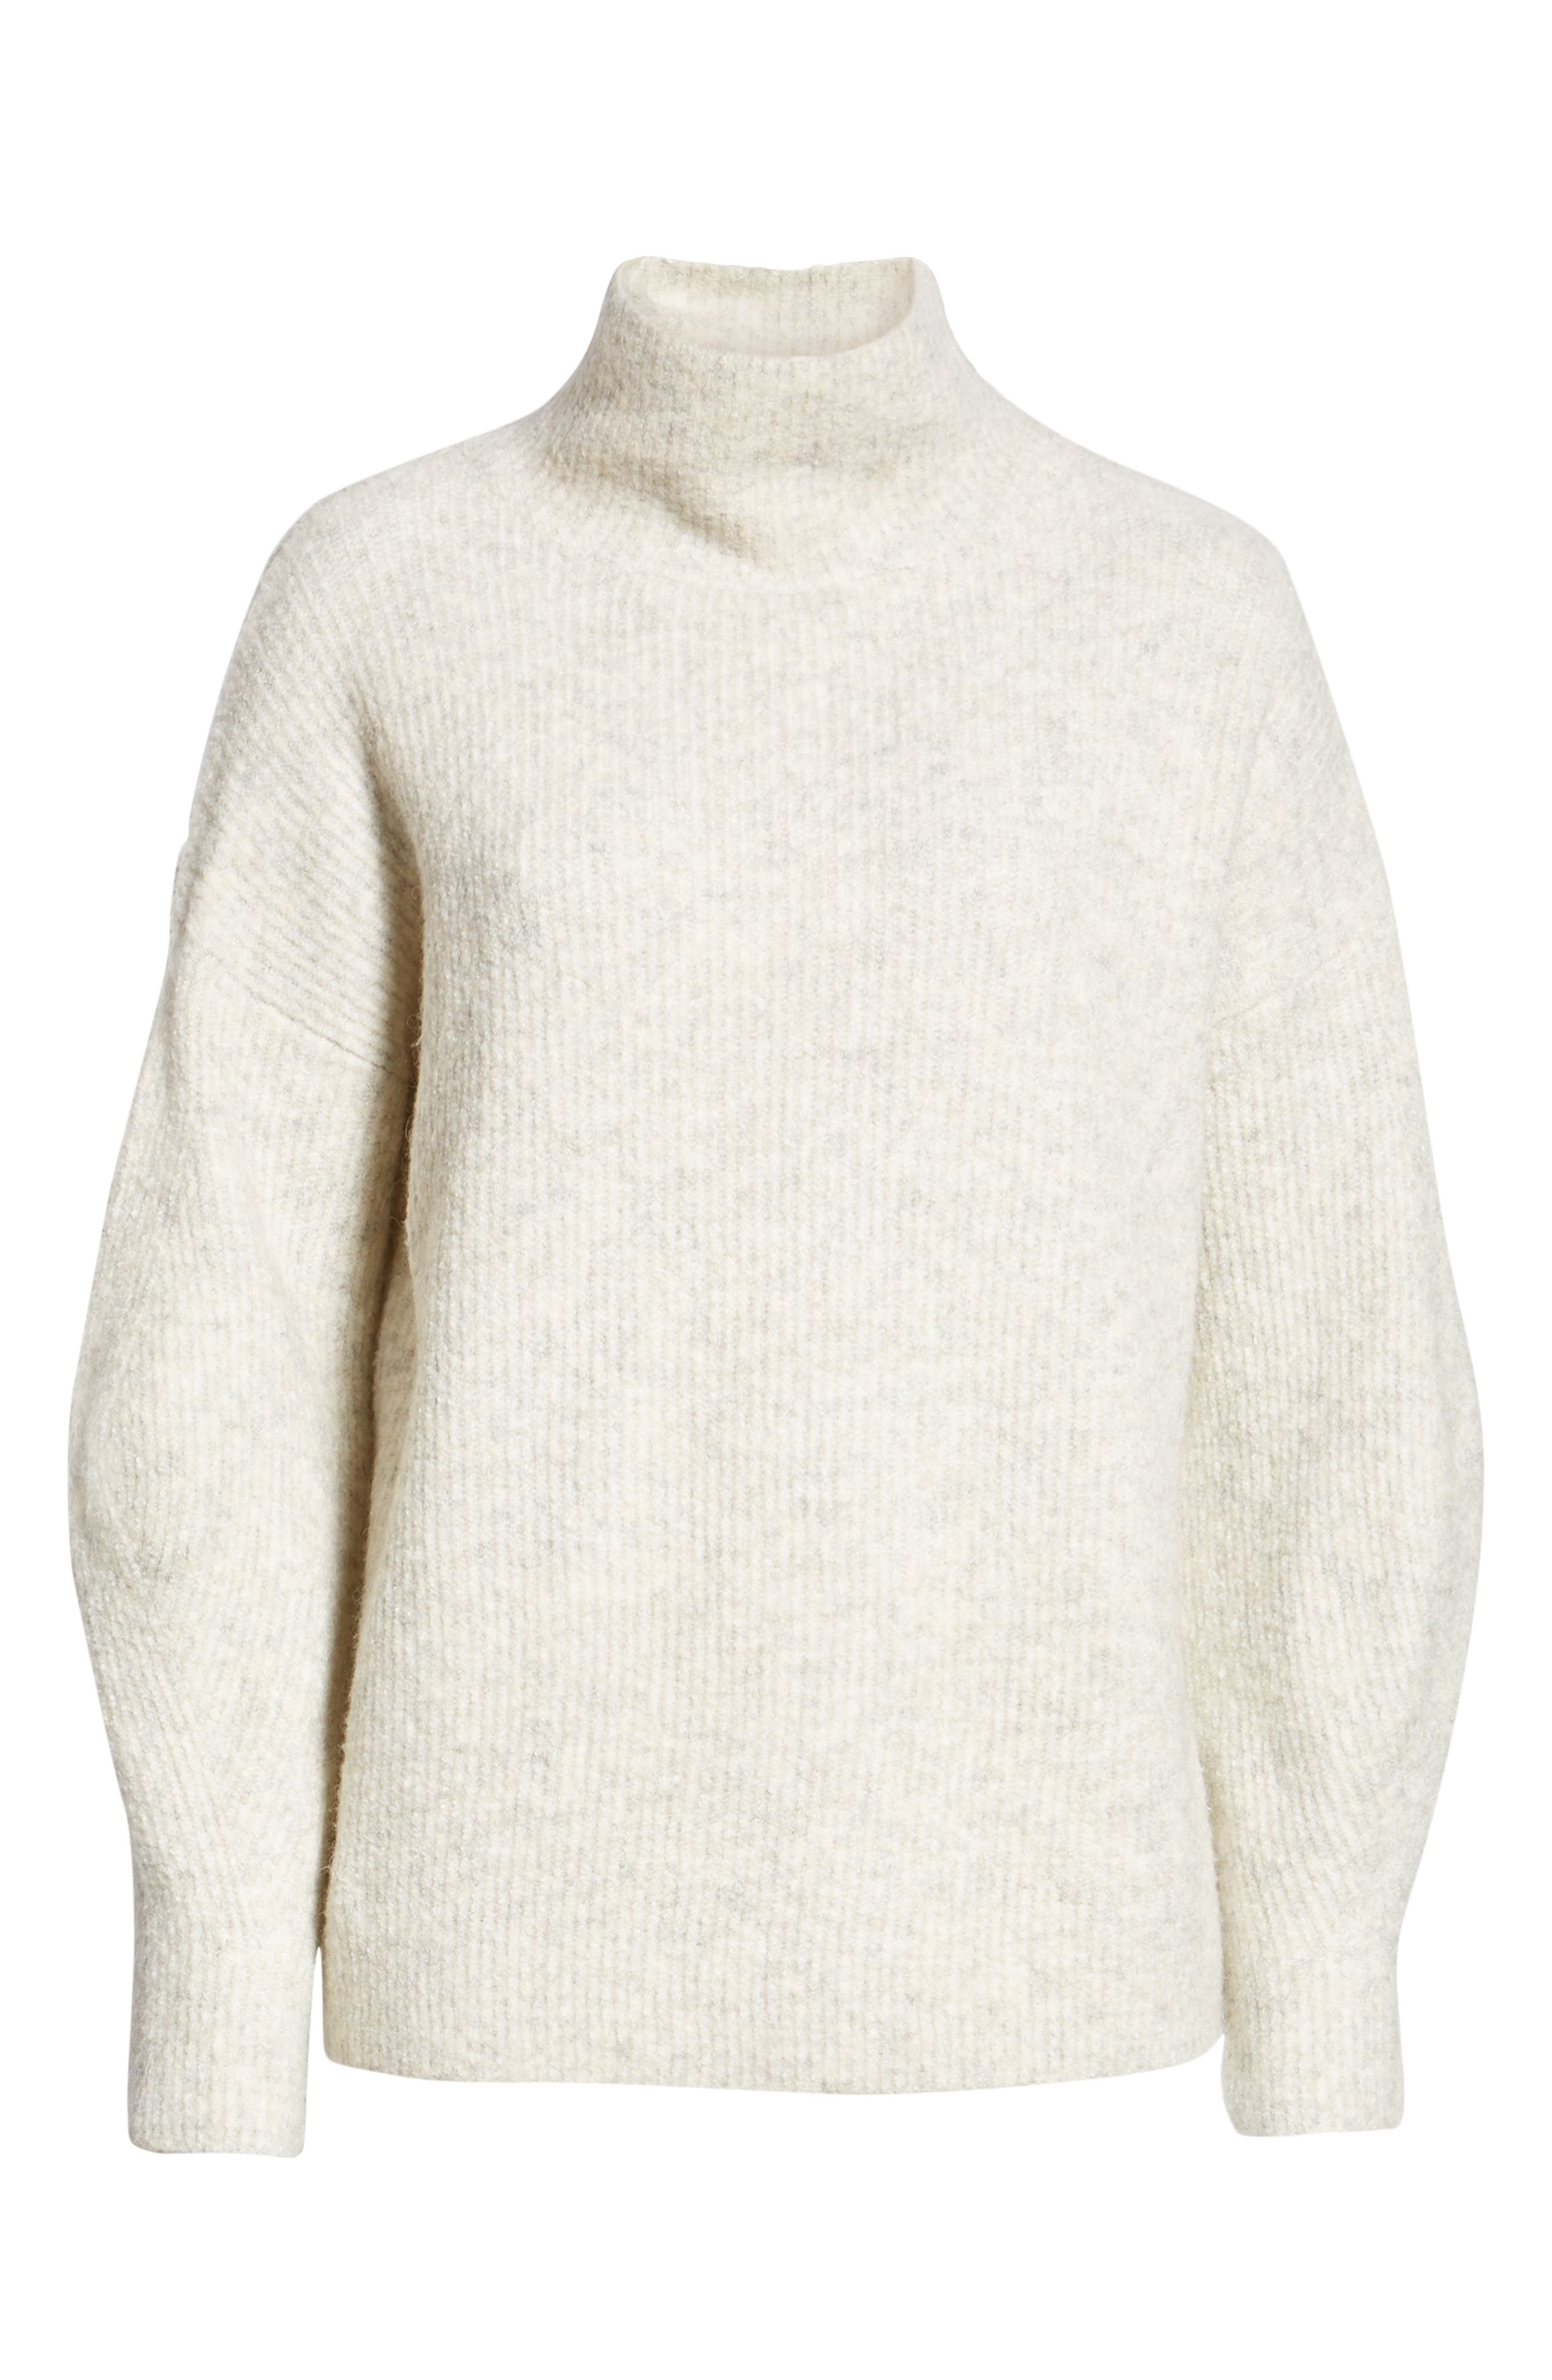 Urban Flossy Cowl Neck Sweater,                             Alternate thumbnail 6, color,                             OATMEAL